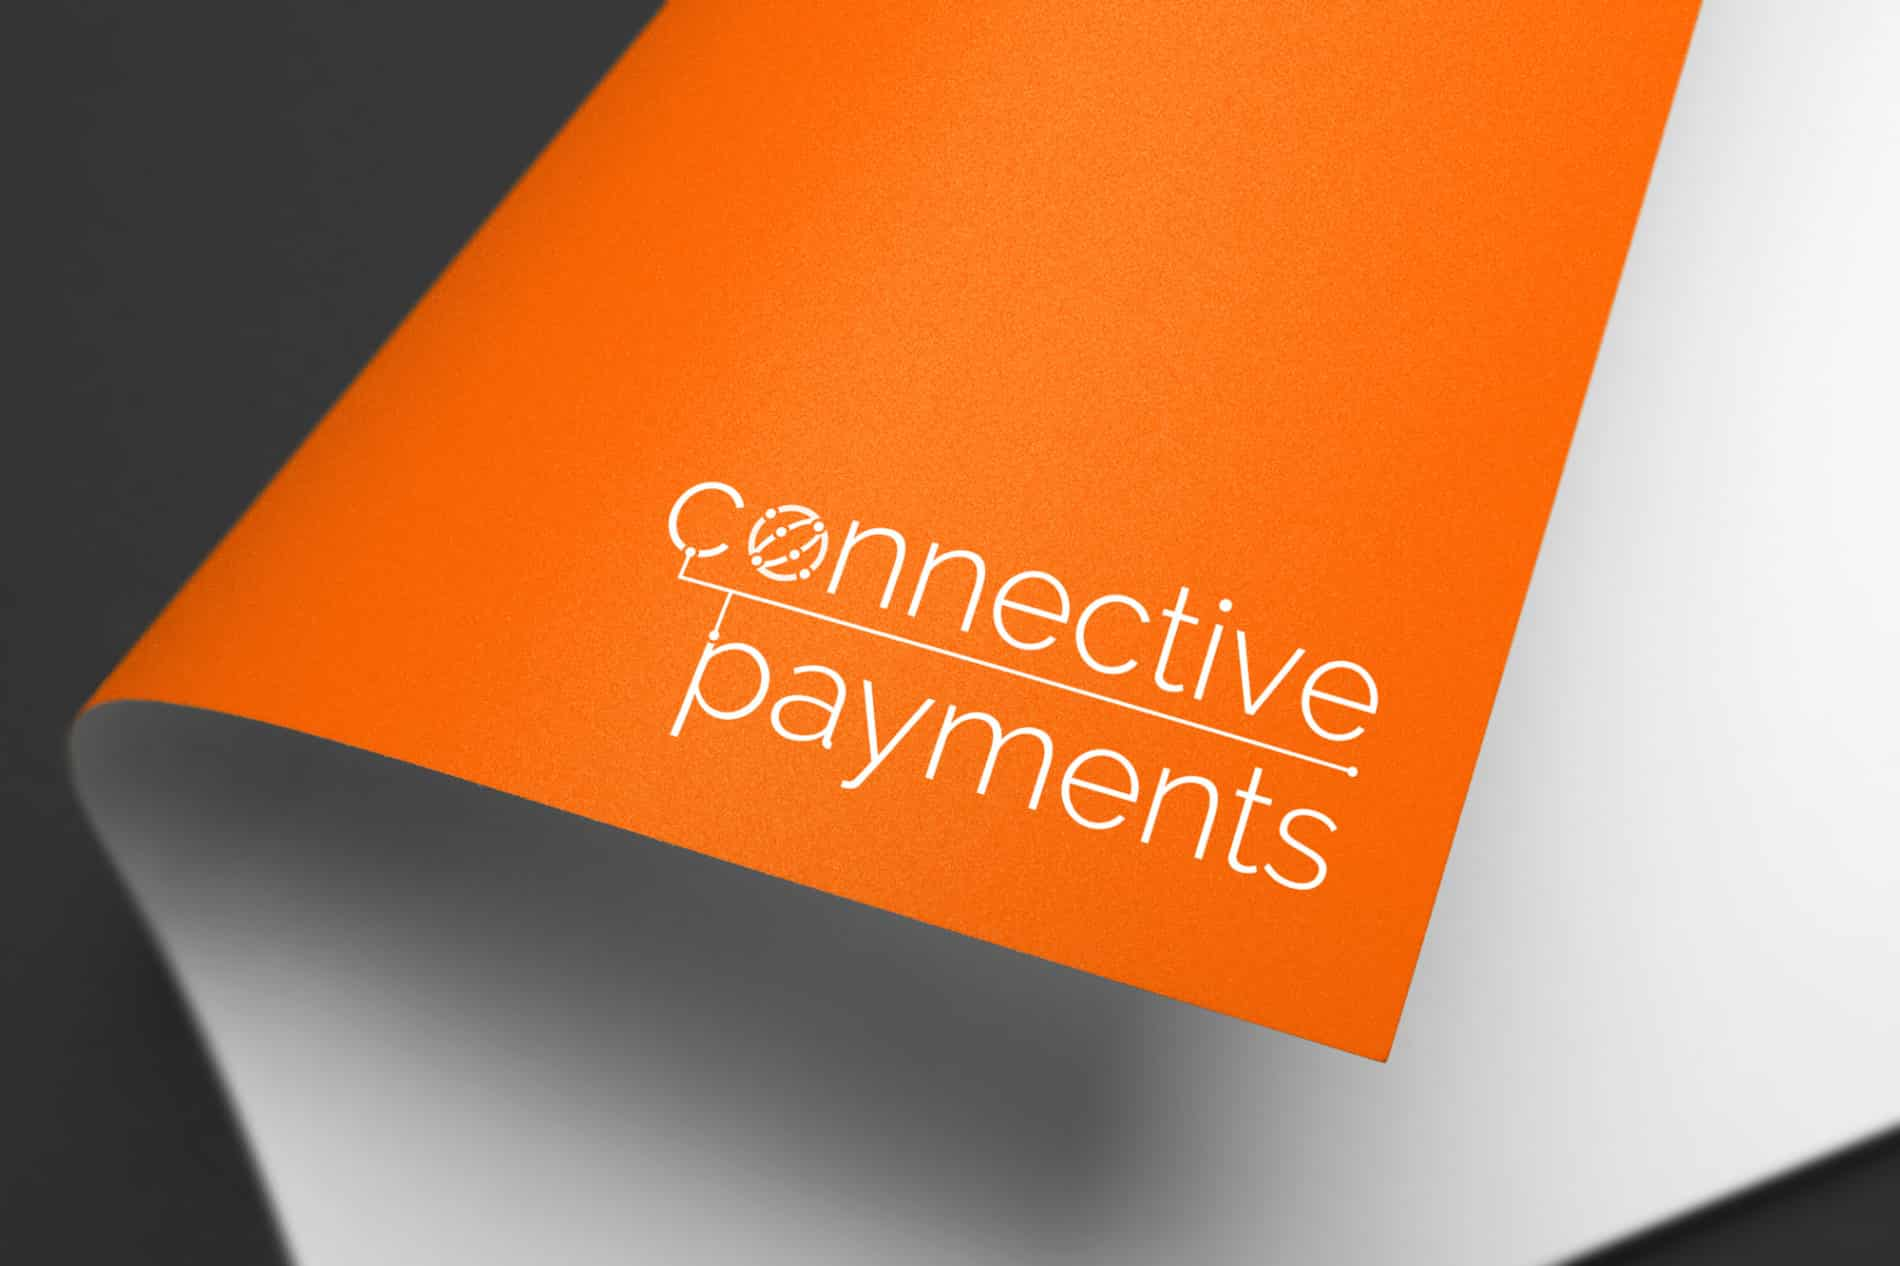 image-principale-connective-payments